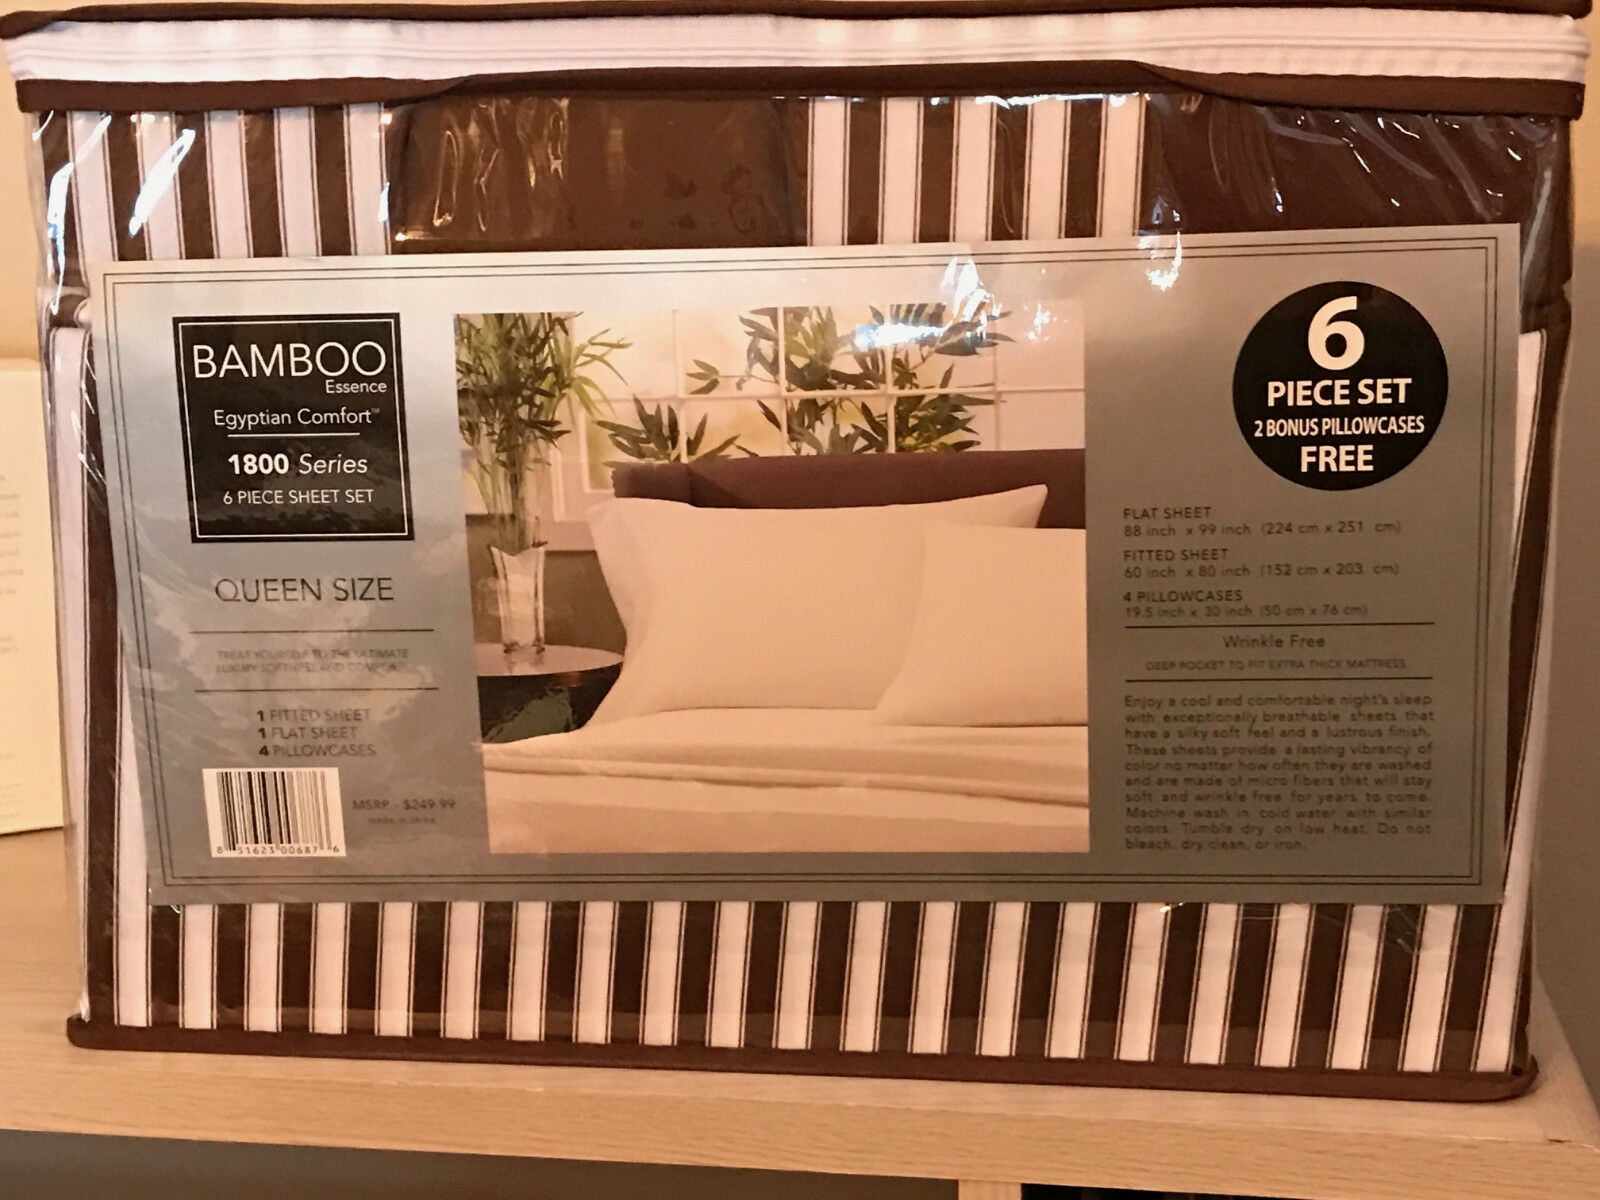 Queen Size Bamboo 1800 Count 6 pc Bed Sheet Set Striped Brown & White